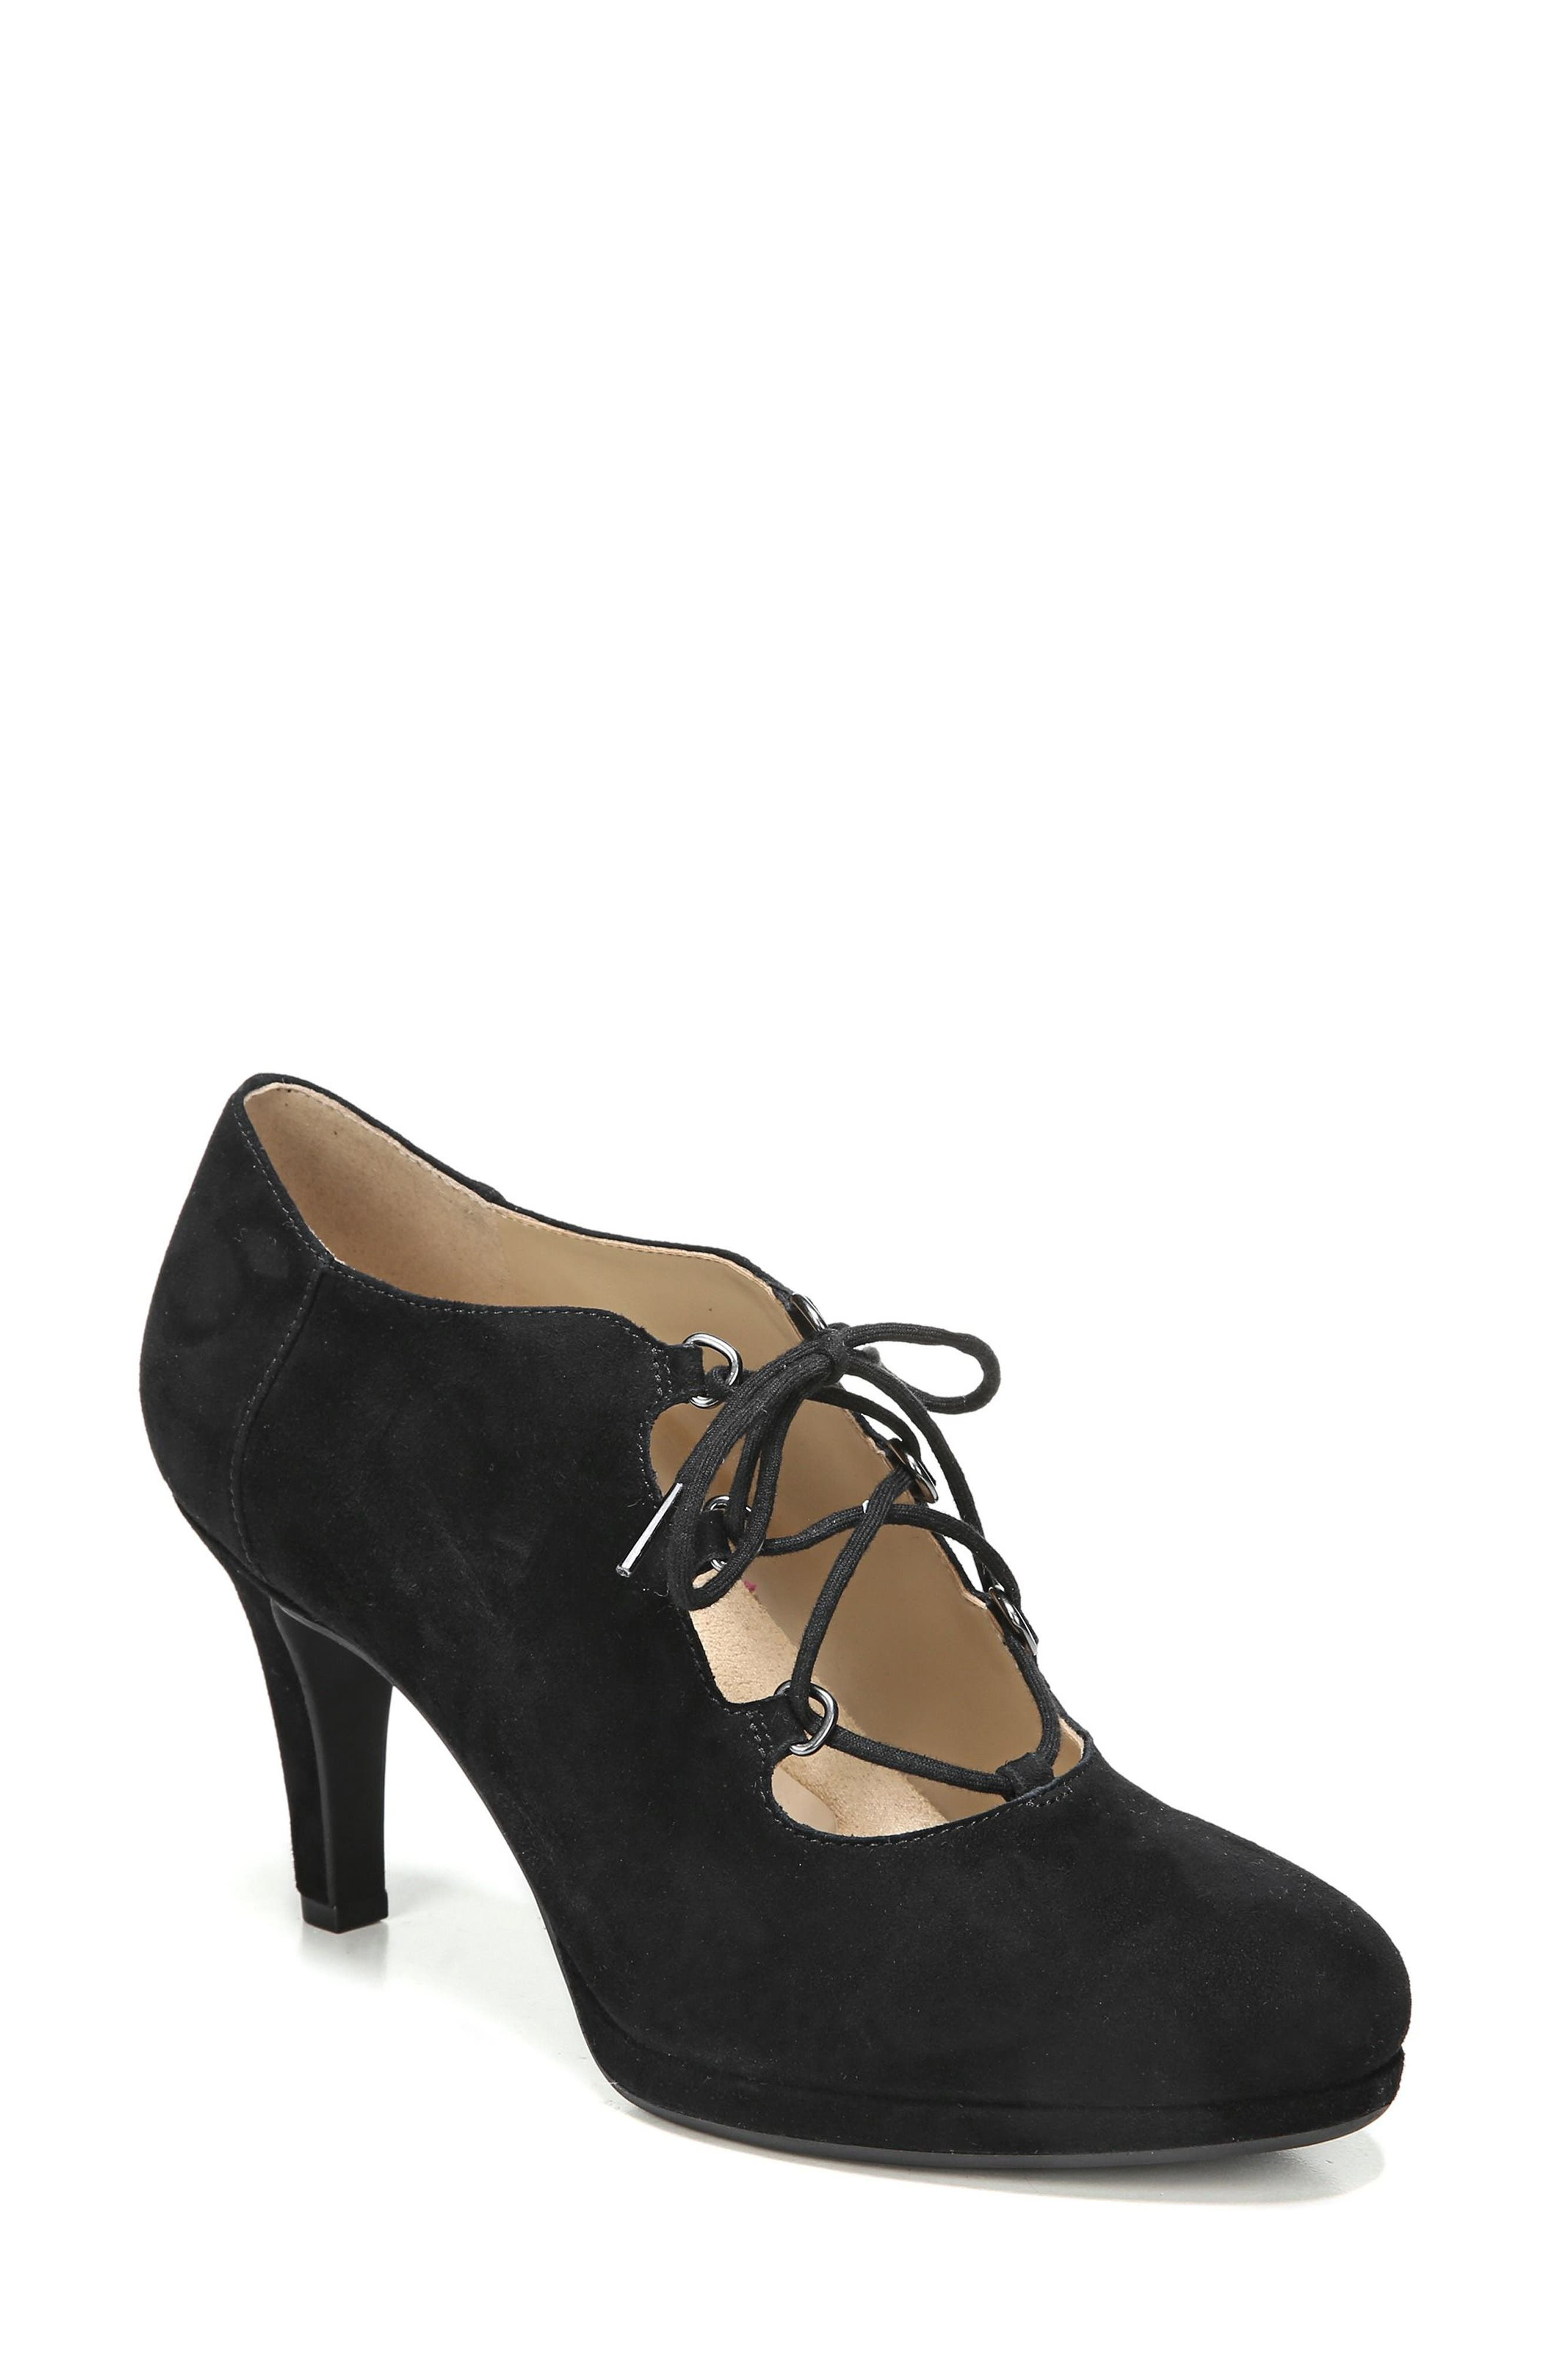 Alternate Image 1 Selected - Naturalizer Macie Lace-Up Pump (Women)